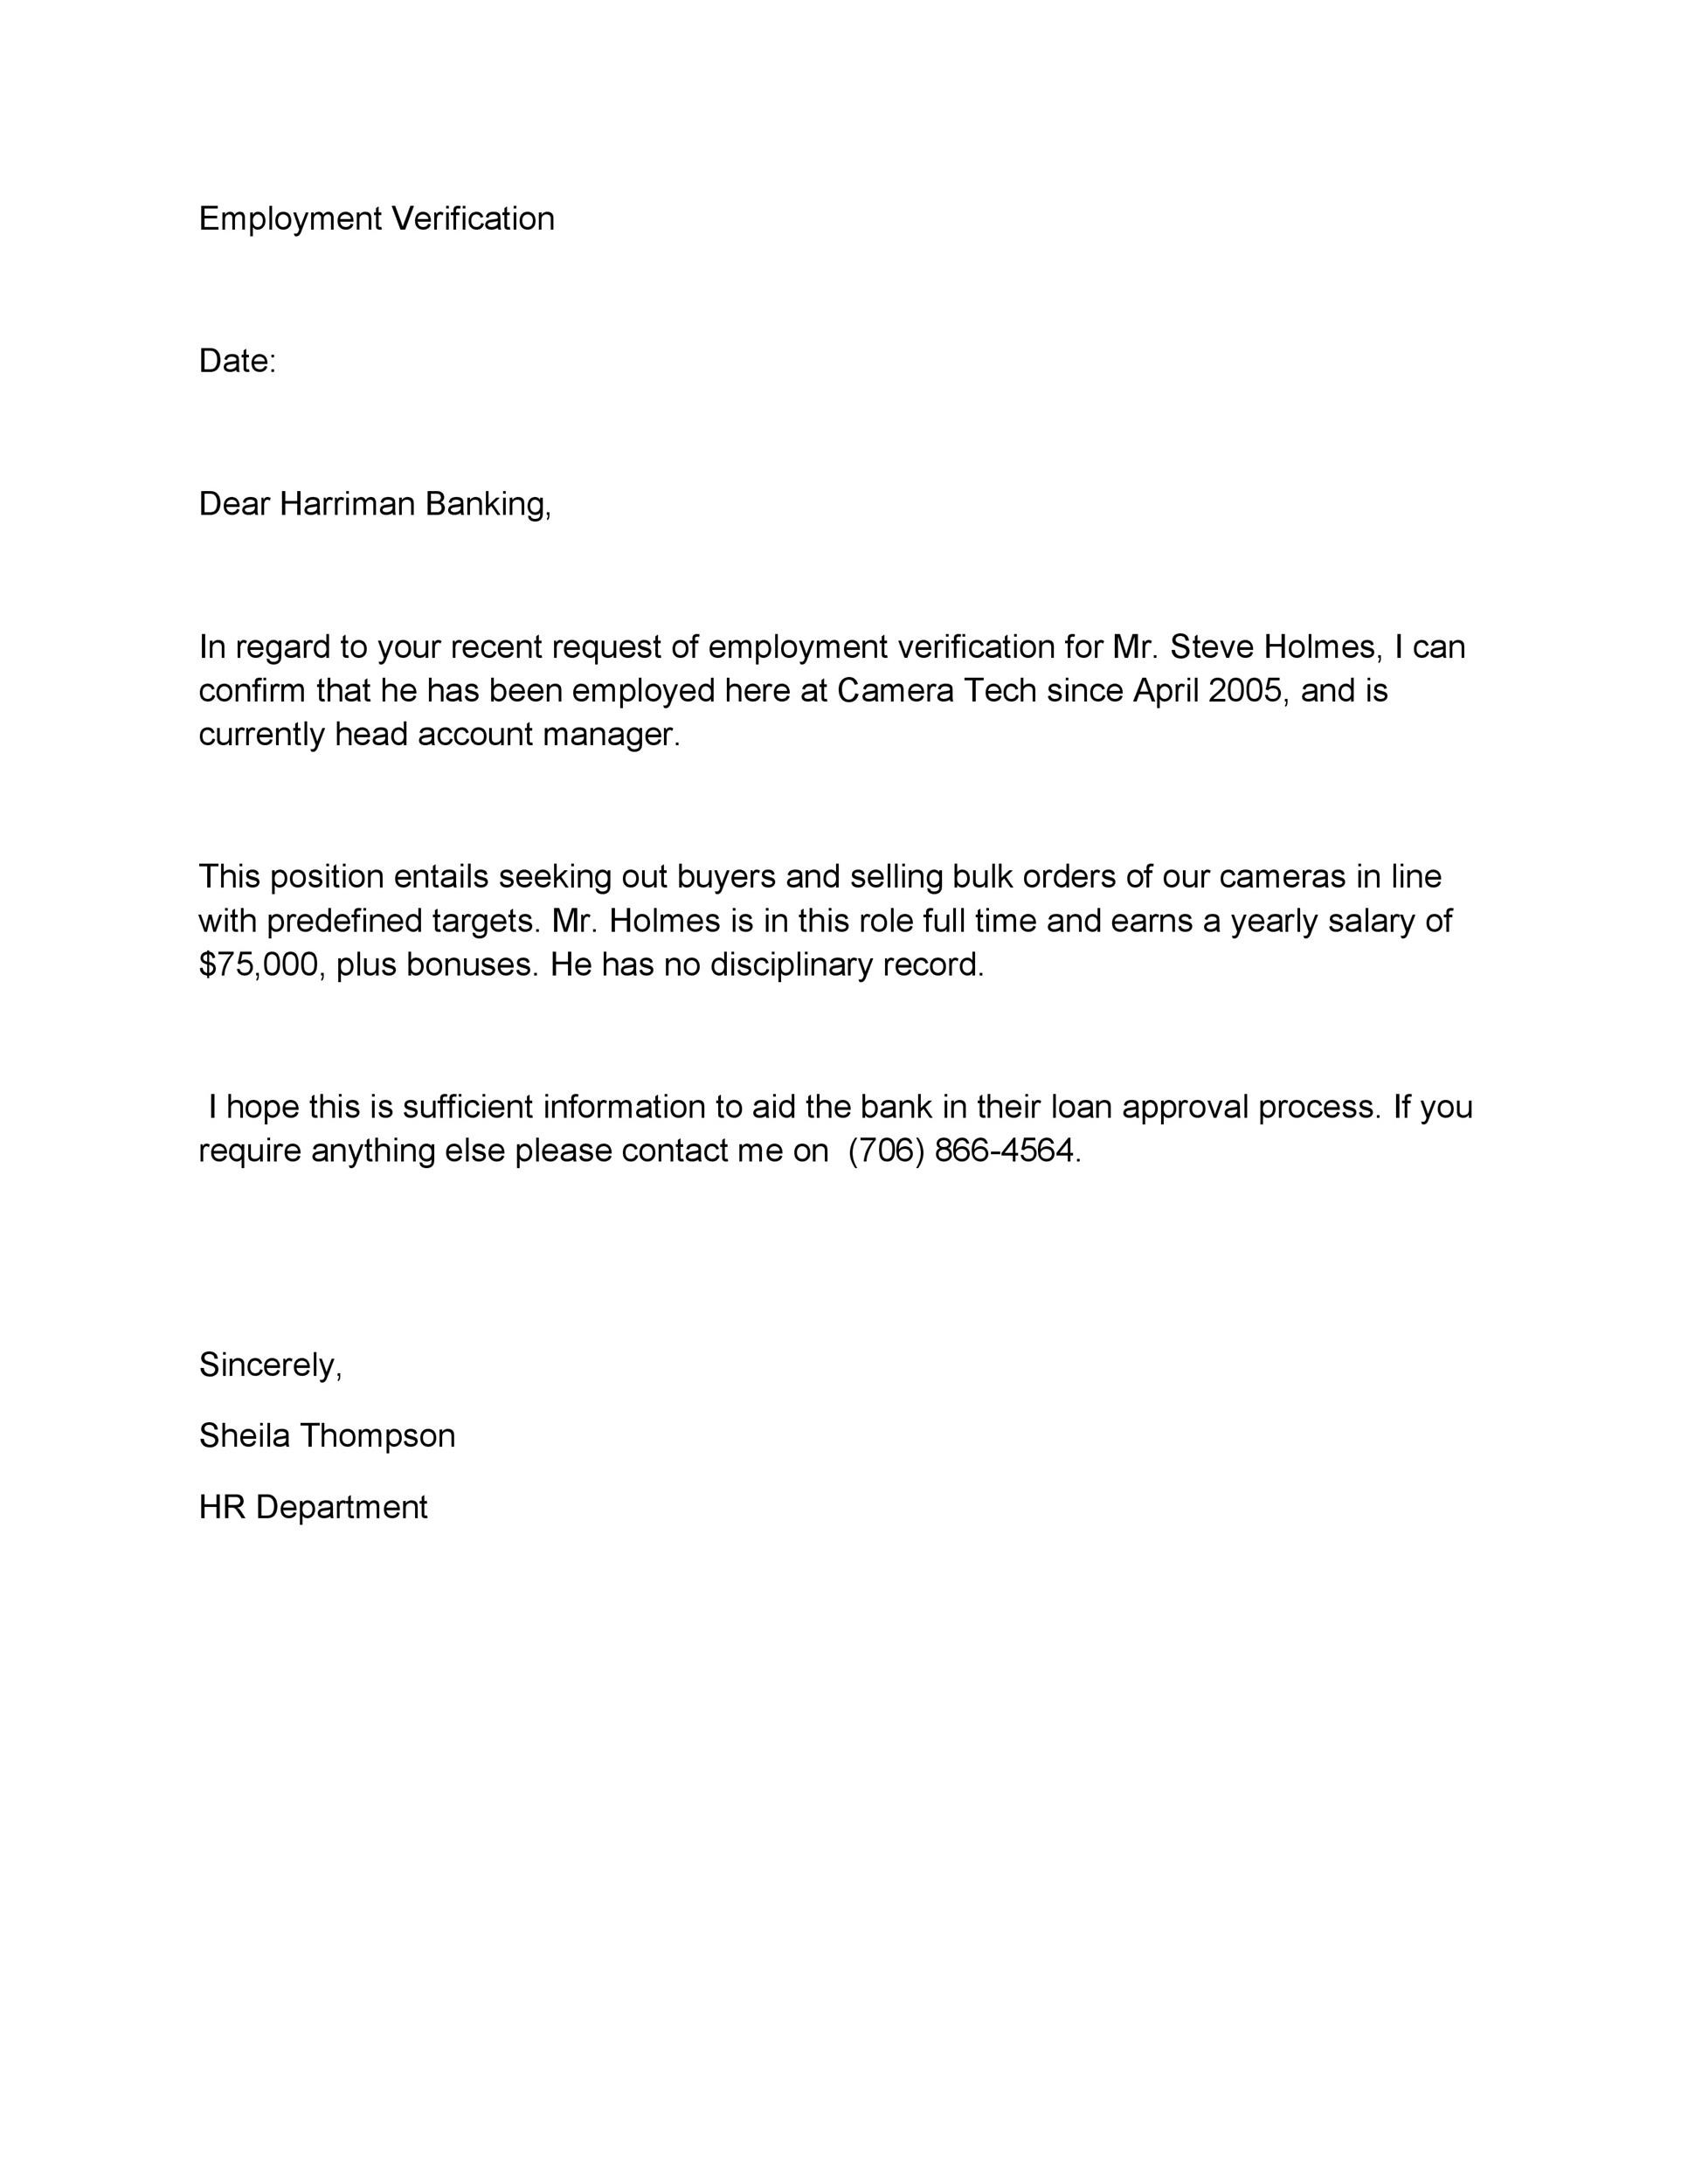 Employment Letter Example  BesikEightyCo